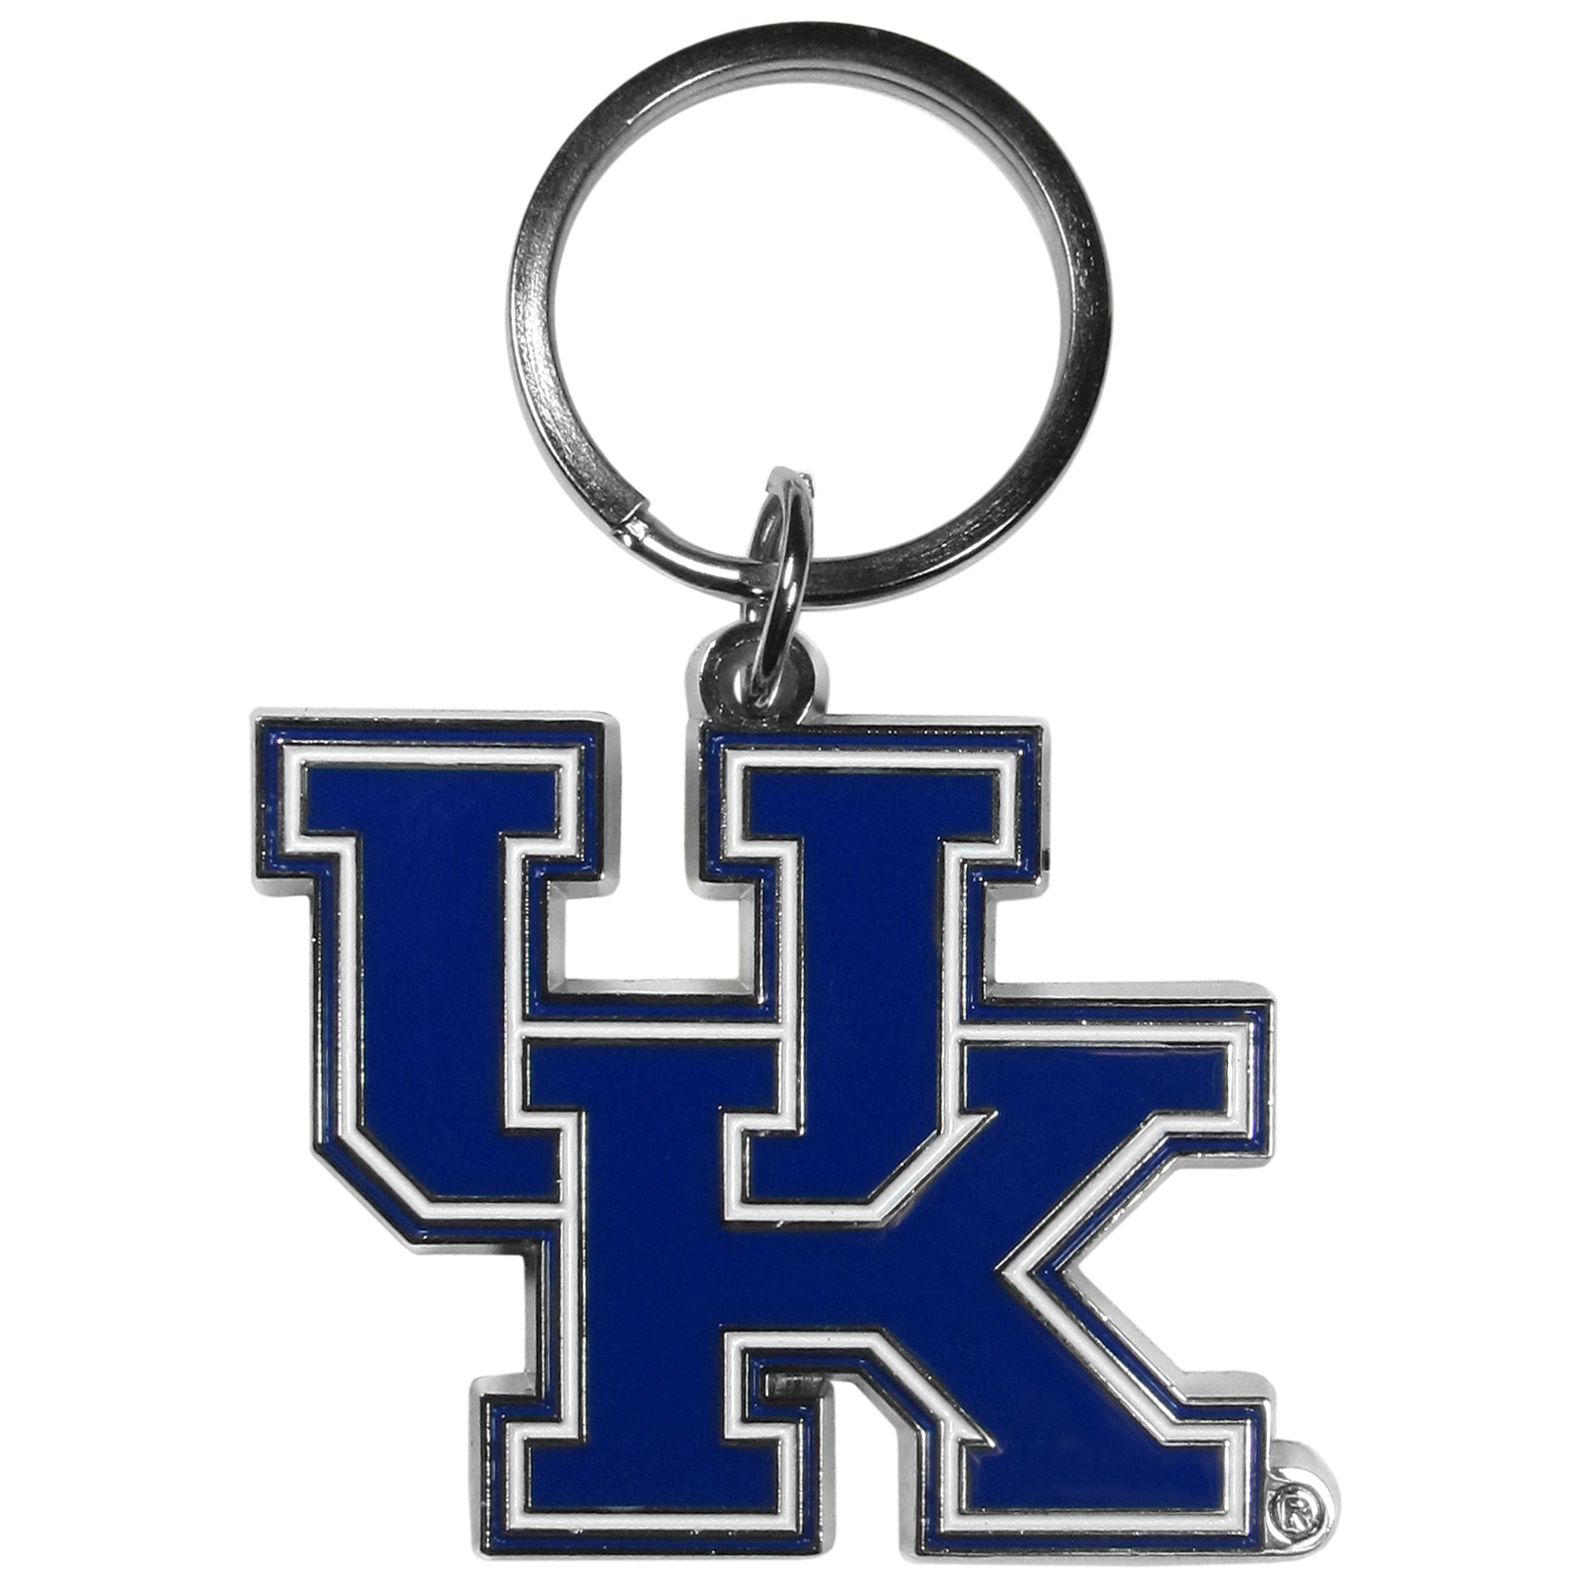 Kentucky Wildcats Enameled Key Chain - Our officially licensed chrome key chain have exceptional 3D detail that really sets this key chain apart from other Kentucky Wildcats key chains. The logo is finely carved and enamel filled with a high polish chrome finish.